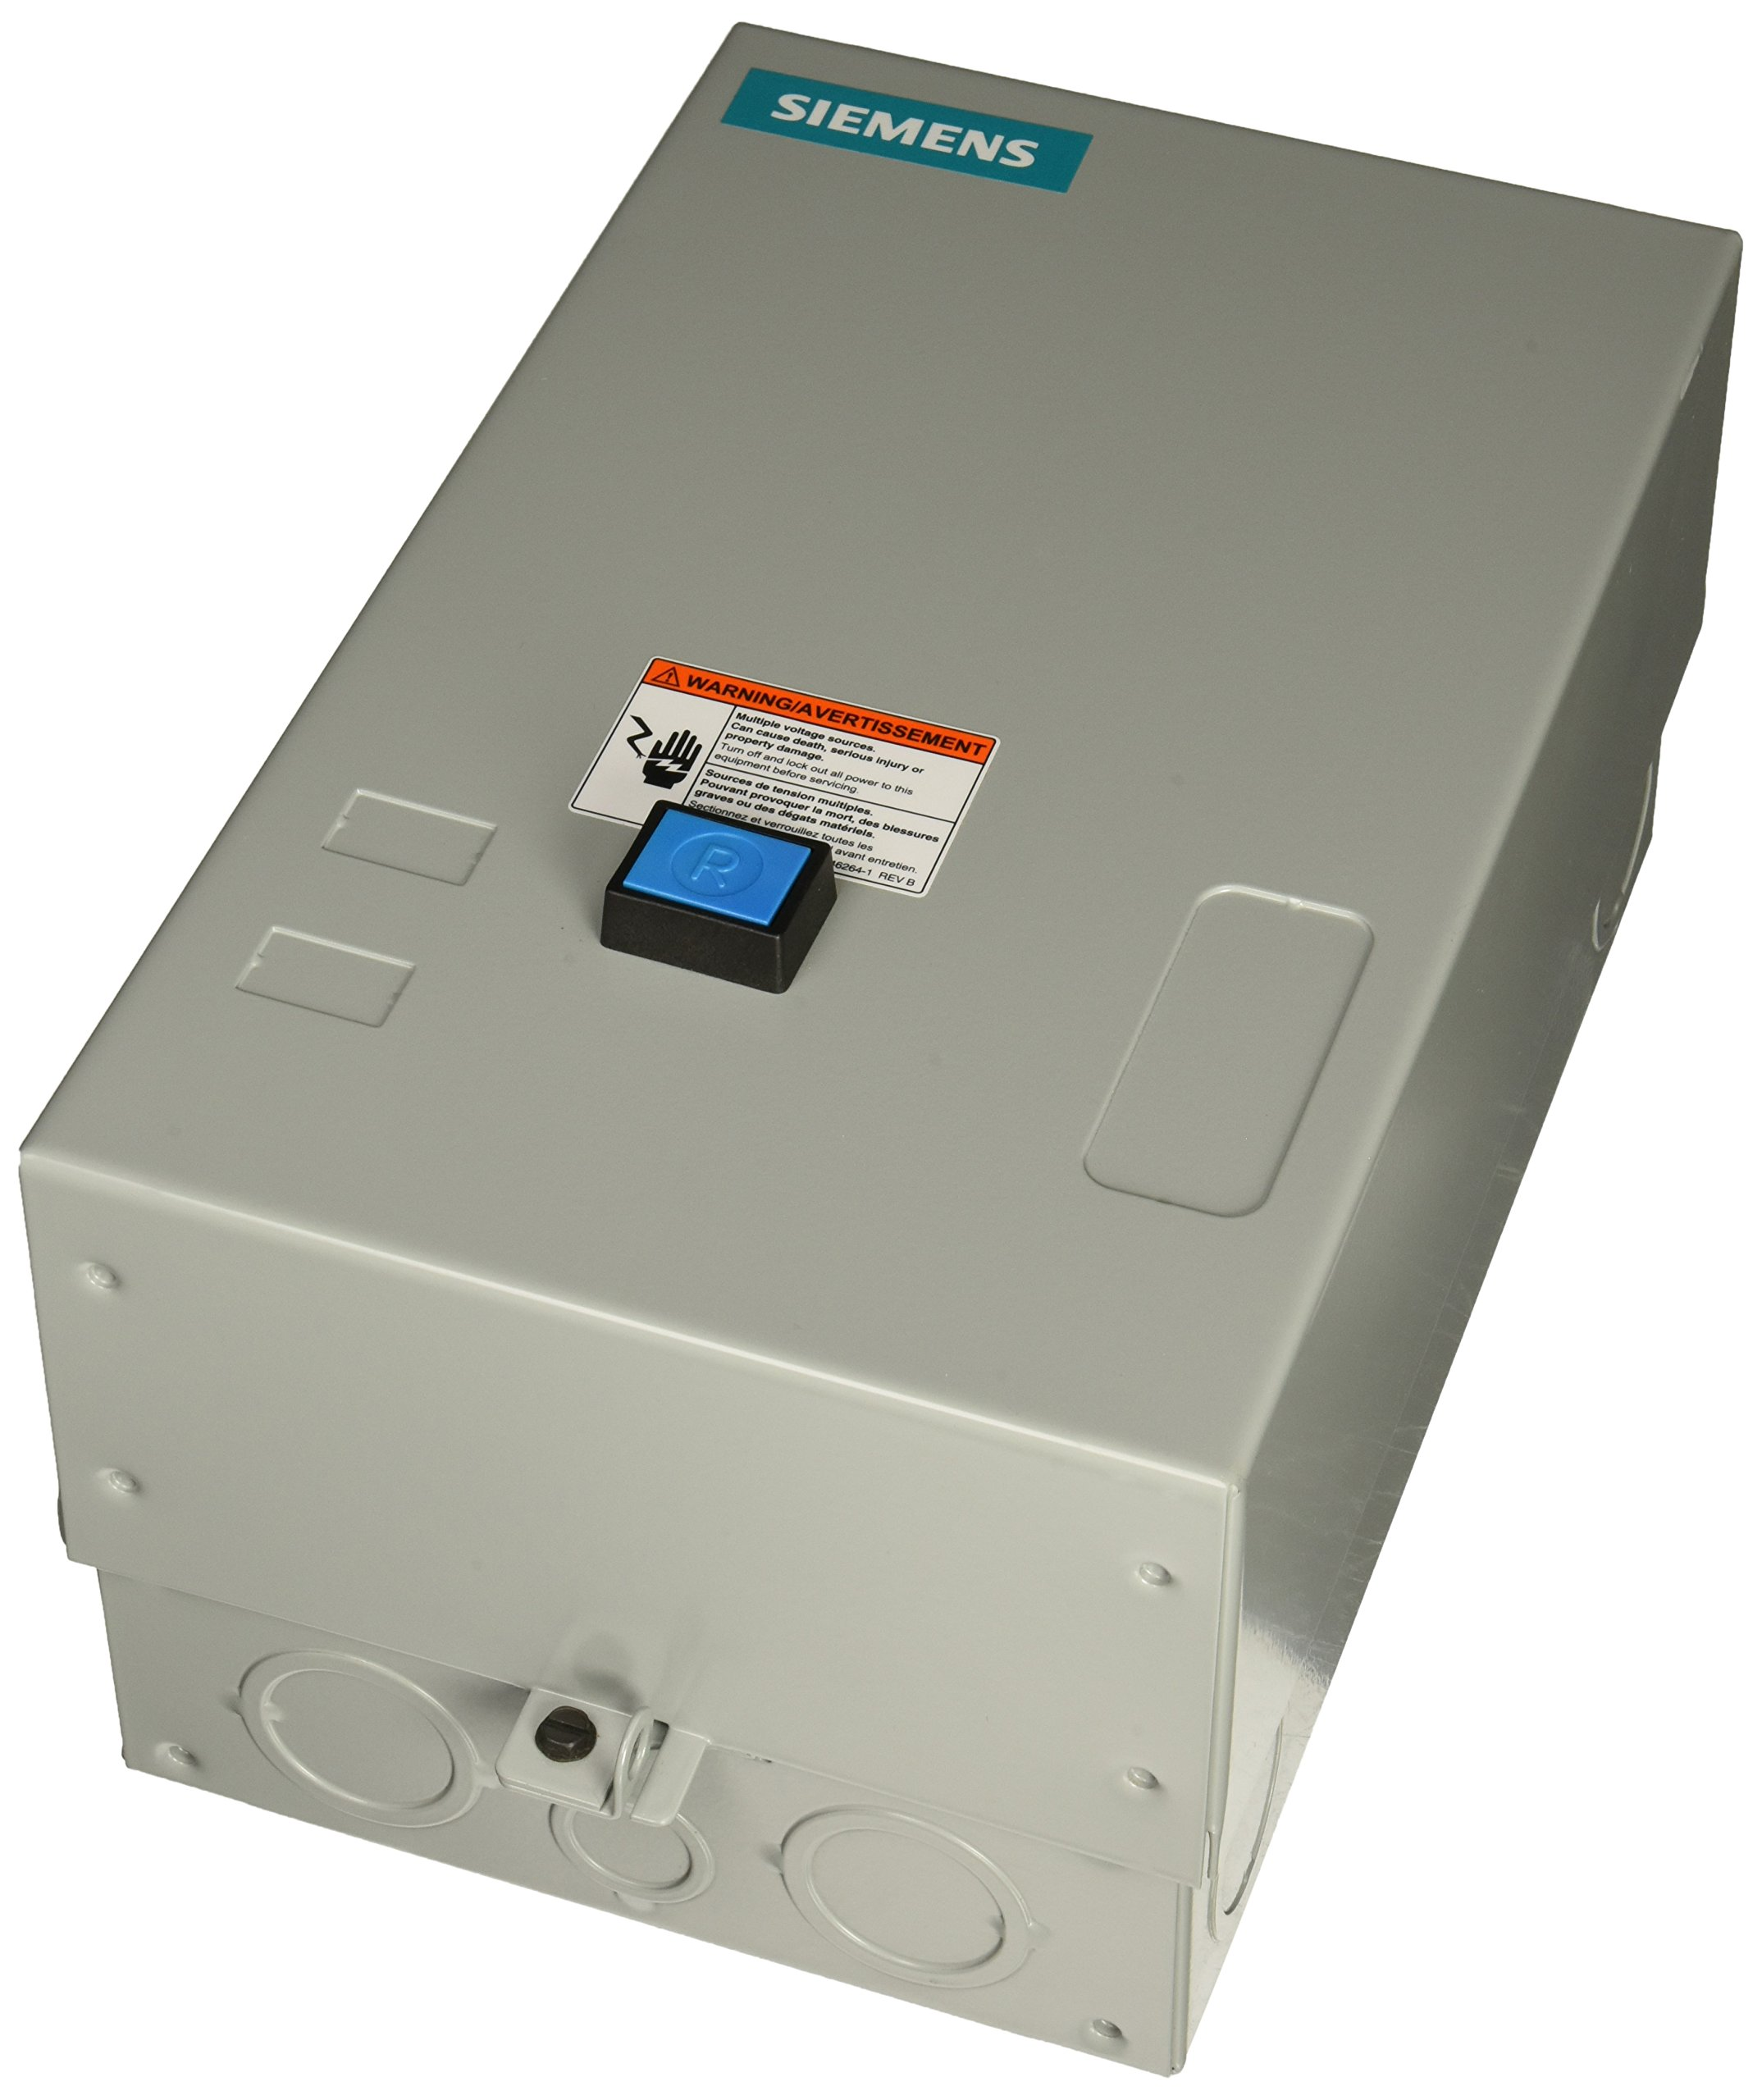 Siemens 14FUF32BH Heavy Duty Motor Starter, Solid State Overload, Auto/Manual Reset, Open Type, NEMA 1 General Purpose Enclosure, 3 Phase, 3 Pole, 2 NEMA Size, 13-52A Amp Range, B Frame Size, 440-480 at 60Hz Coil Voltage